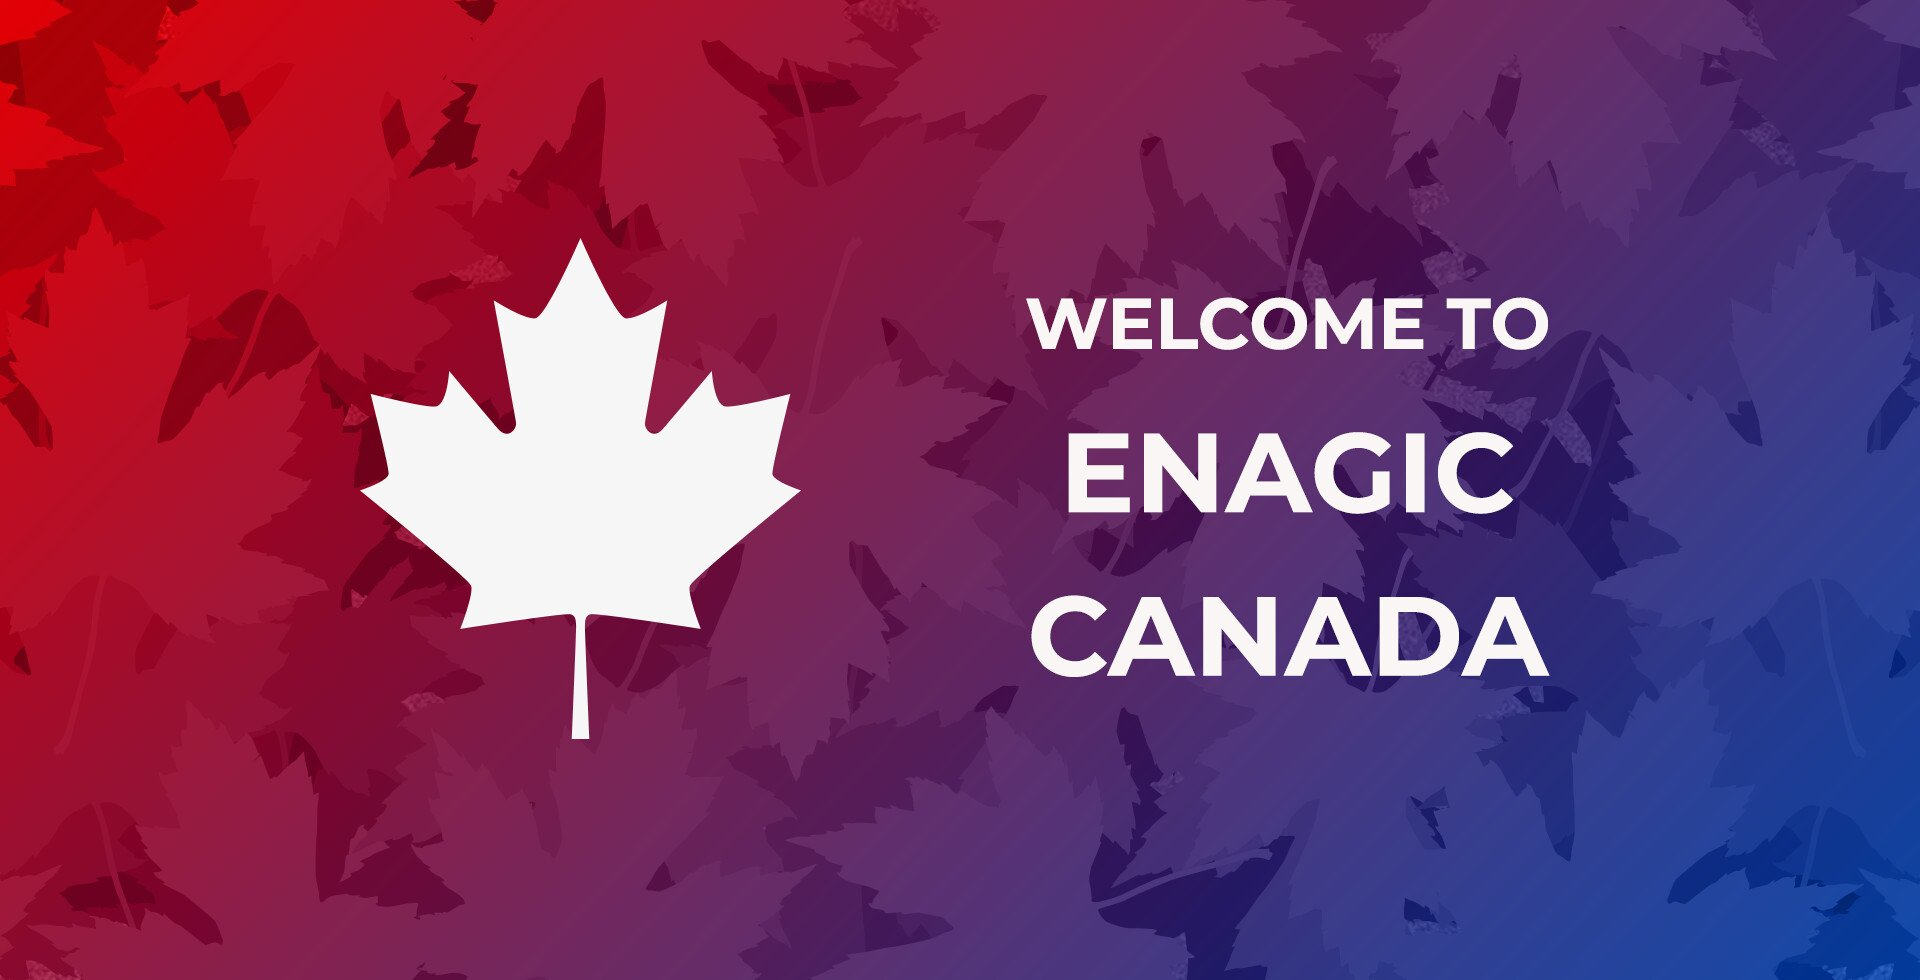 Welcome to Enagic Canada!